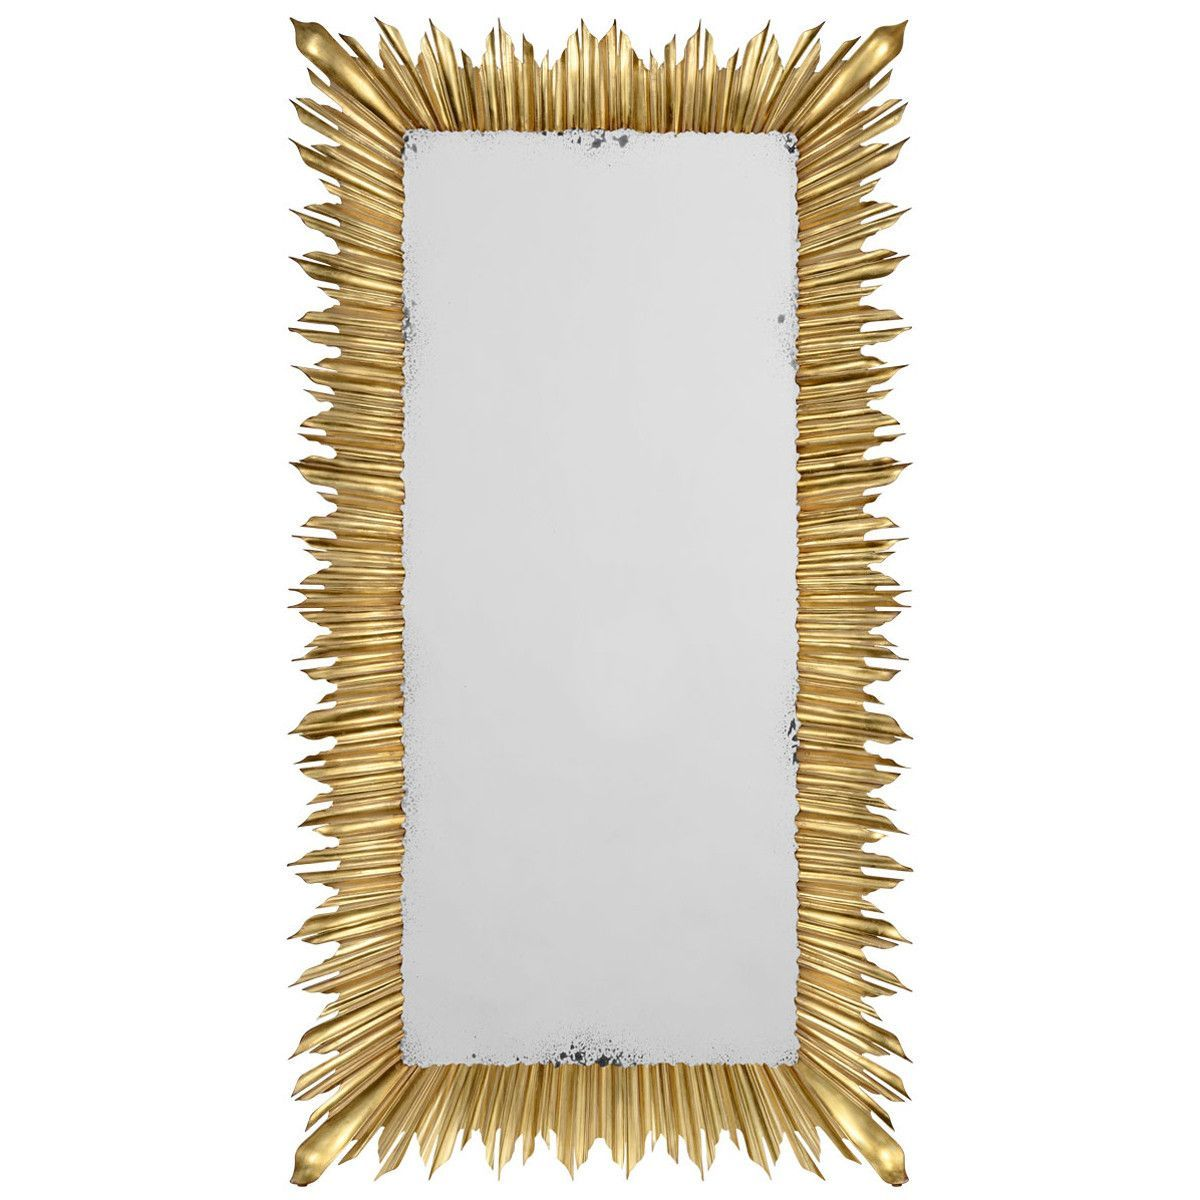 Give your furniture an antiqued or distressed look ladulcelavie - Jonathan Charles Floor Standing Rectangular Sunburst Mirror